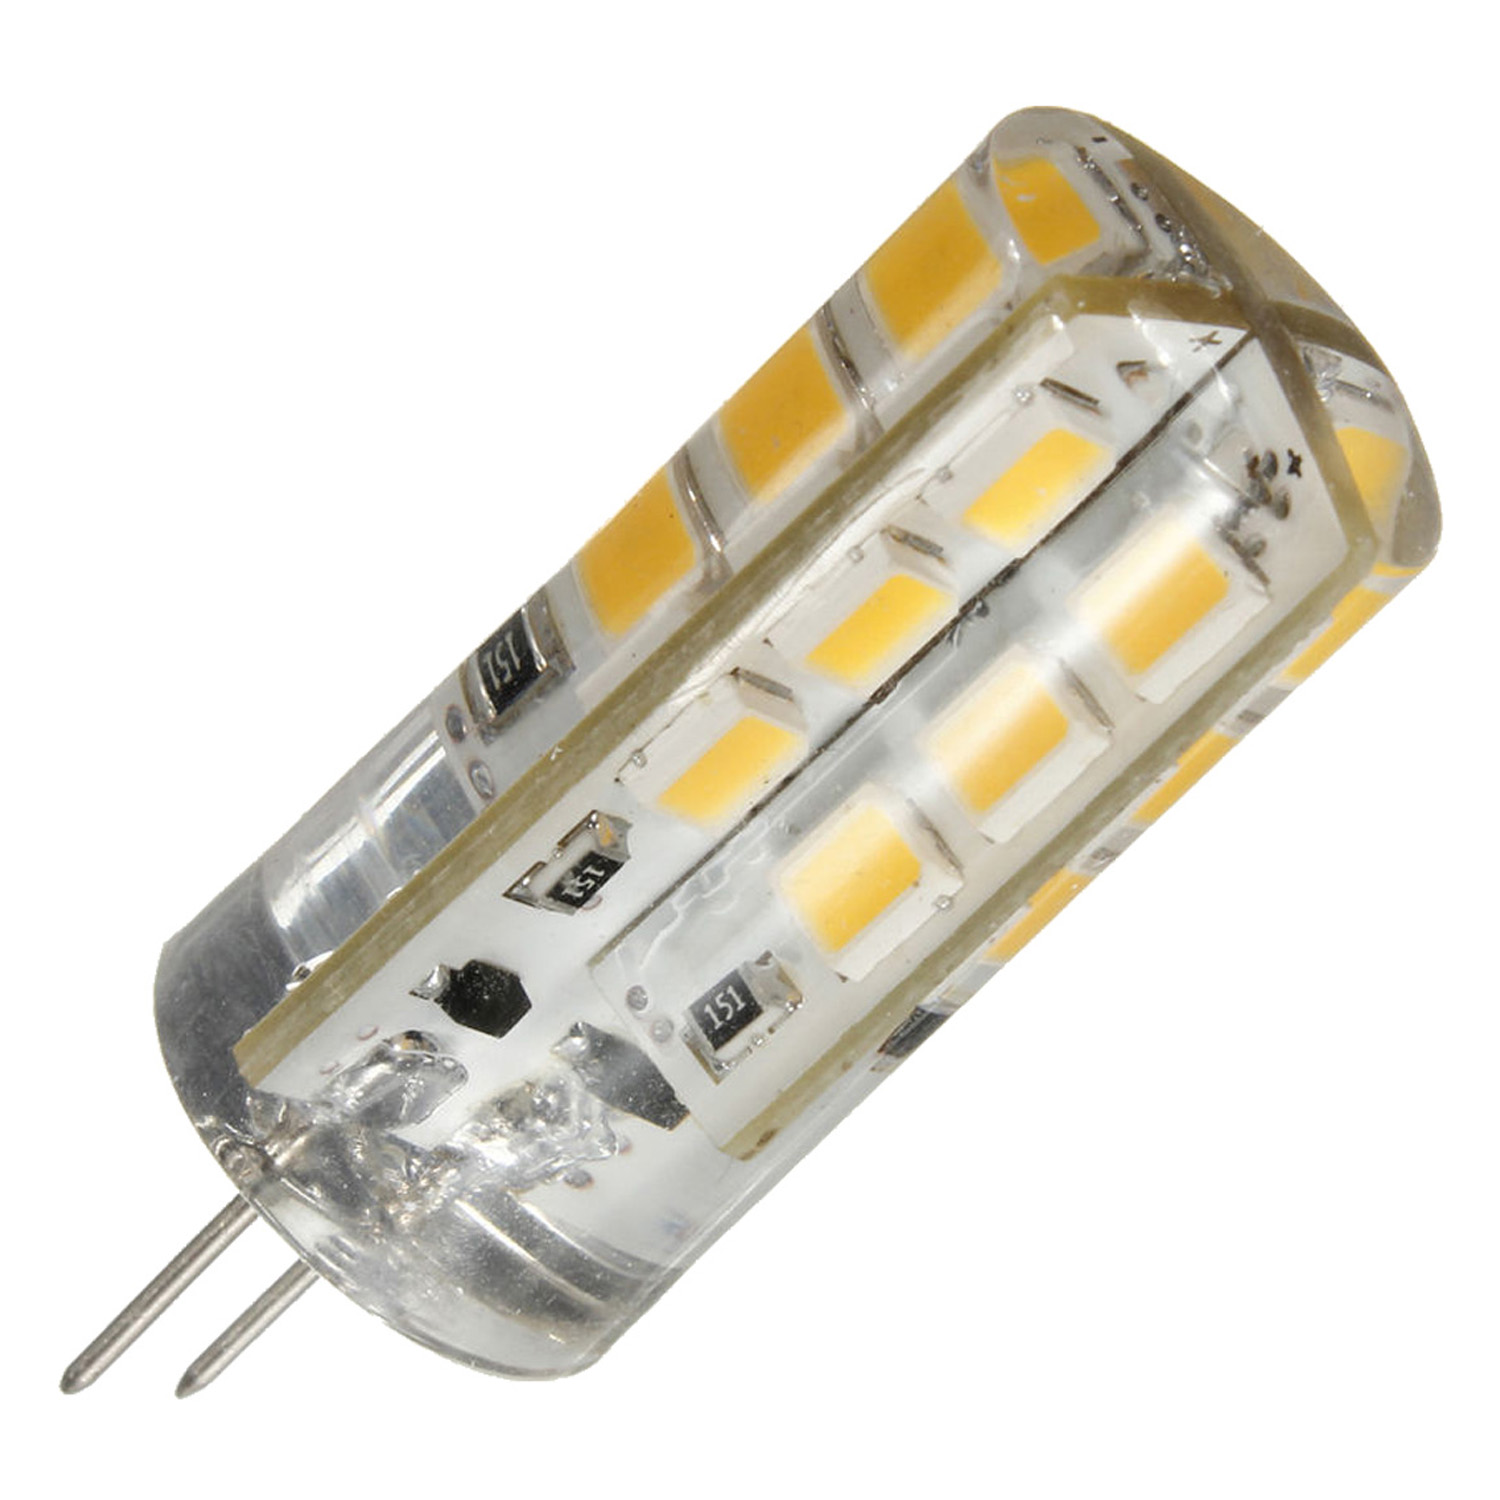 5x g4 3w 2835smd 24 led light silicone capsule replace halogen bulb light 12v pk ebay. Black Bedroom Furniture Sets. Home Design Ideas